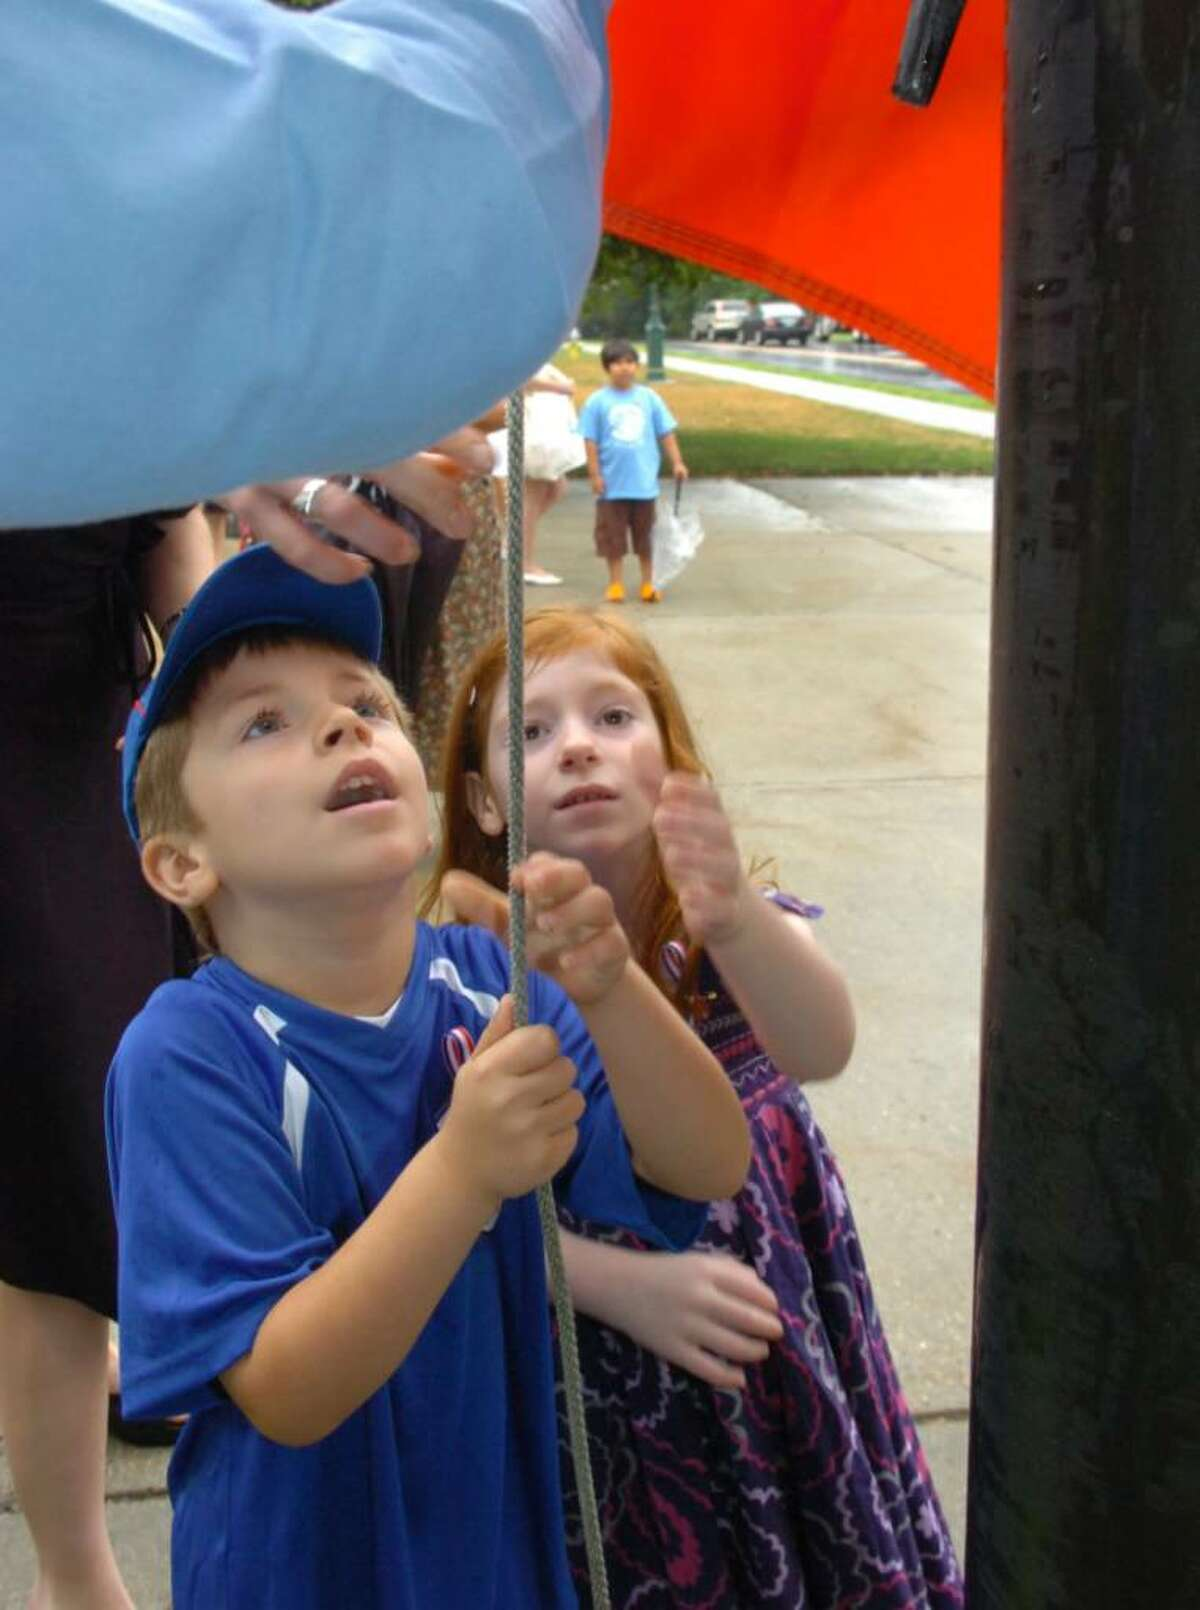 Brandon Lamouille, 6, left, and his sister Emma, 5, of Stamford, raise the French flag to celebrate Bastille Day in front of Greenwich Town Hall, on Wednesday, July 14, 2010.